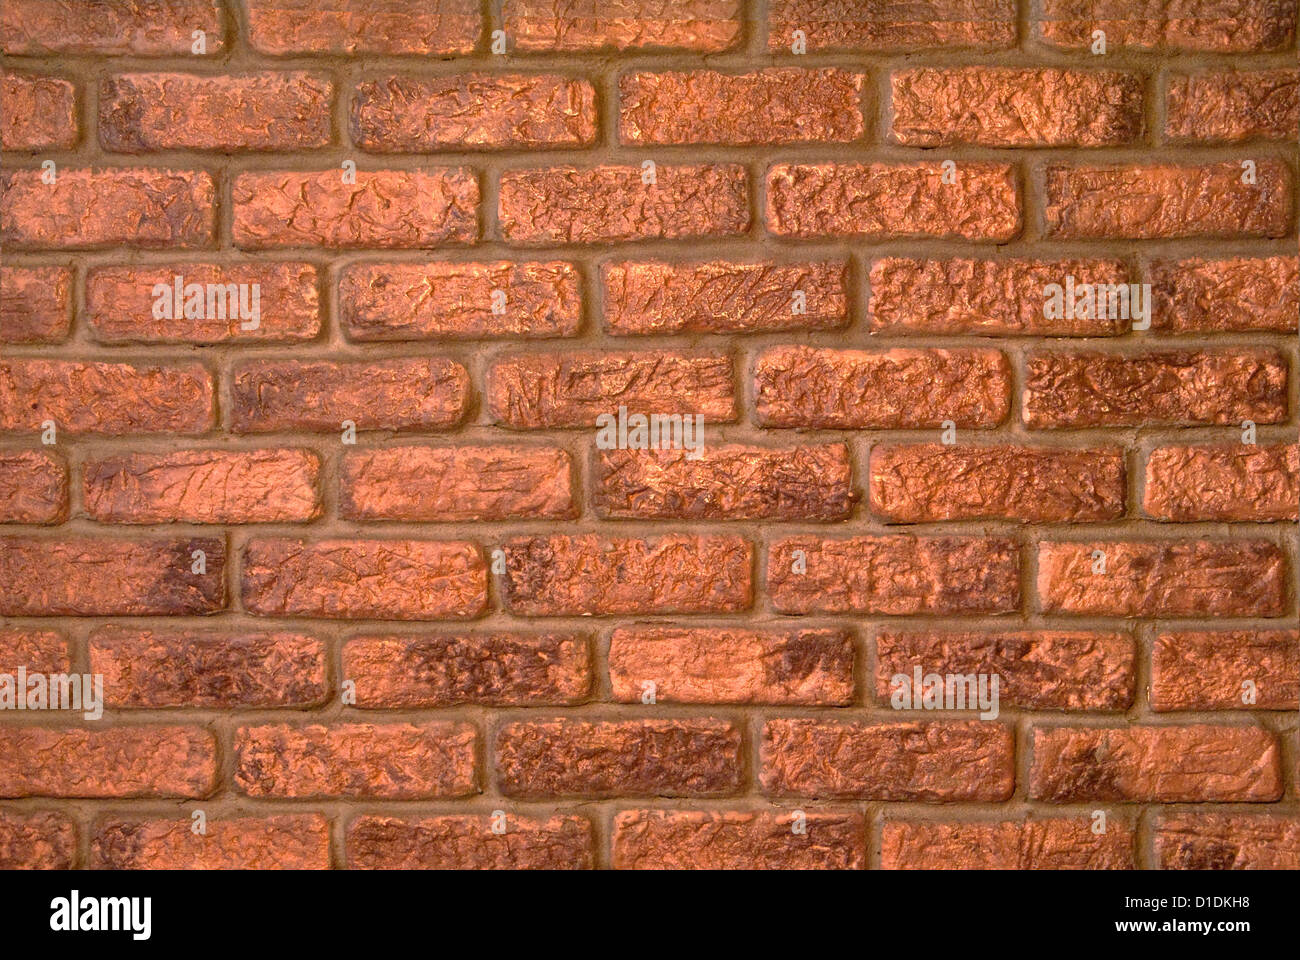 Muro de ladrillo caravista stock photo 52546516 alamy - Ladrillo visto precio ...